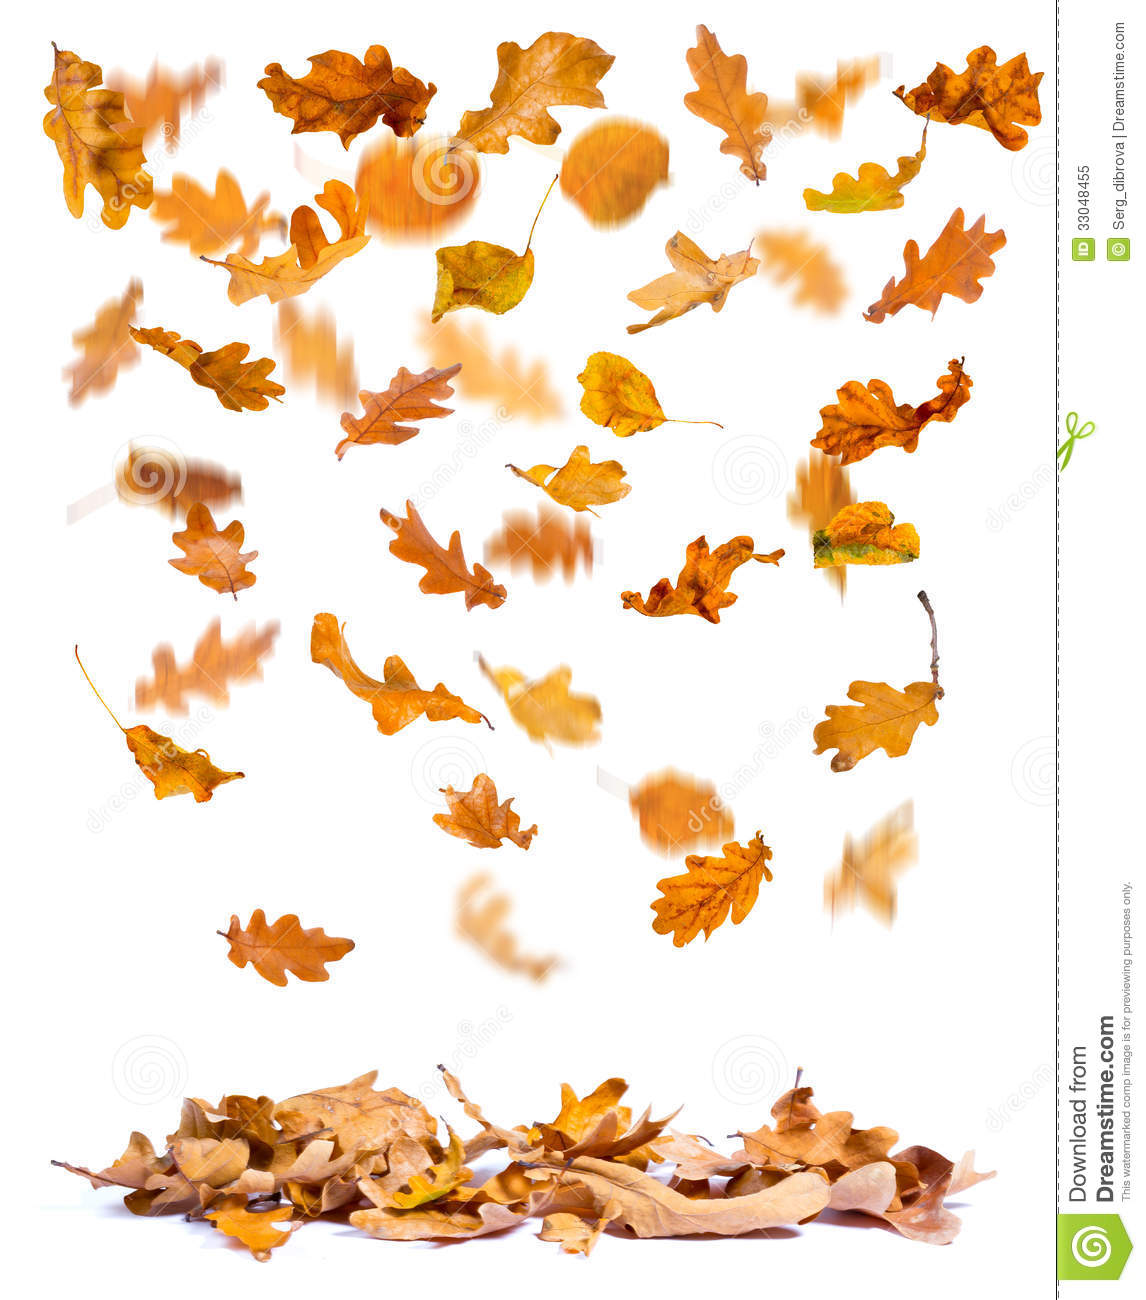 Animated Leaves Falling Clipart.